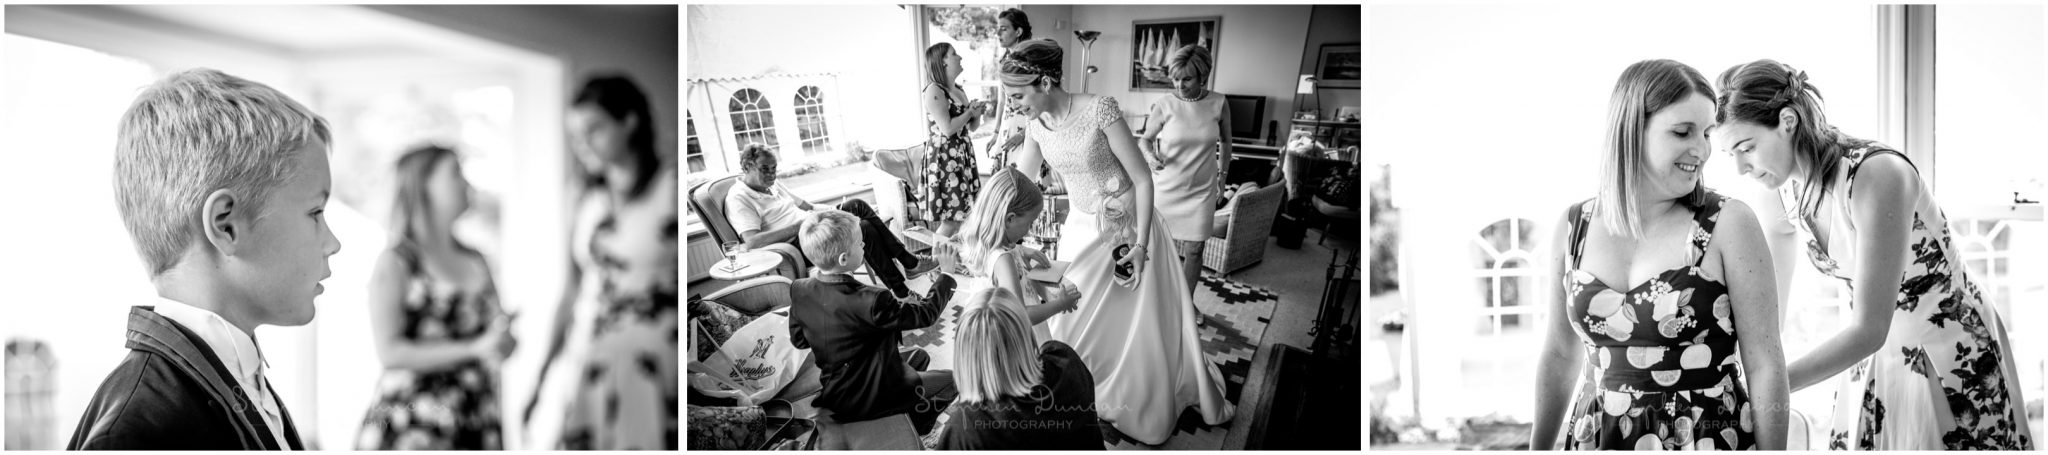 Lymington wedding photography bridal prep at home